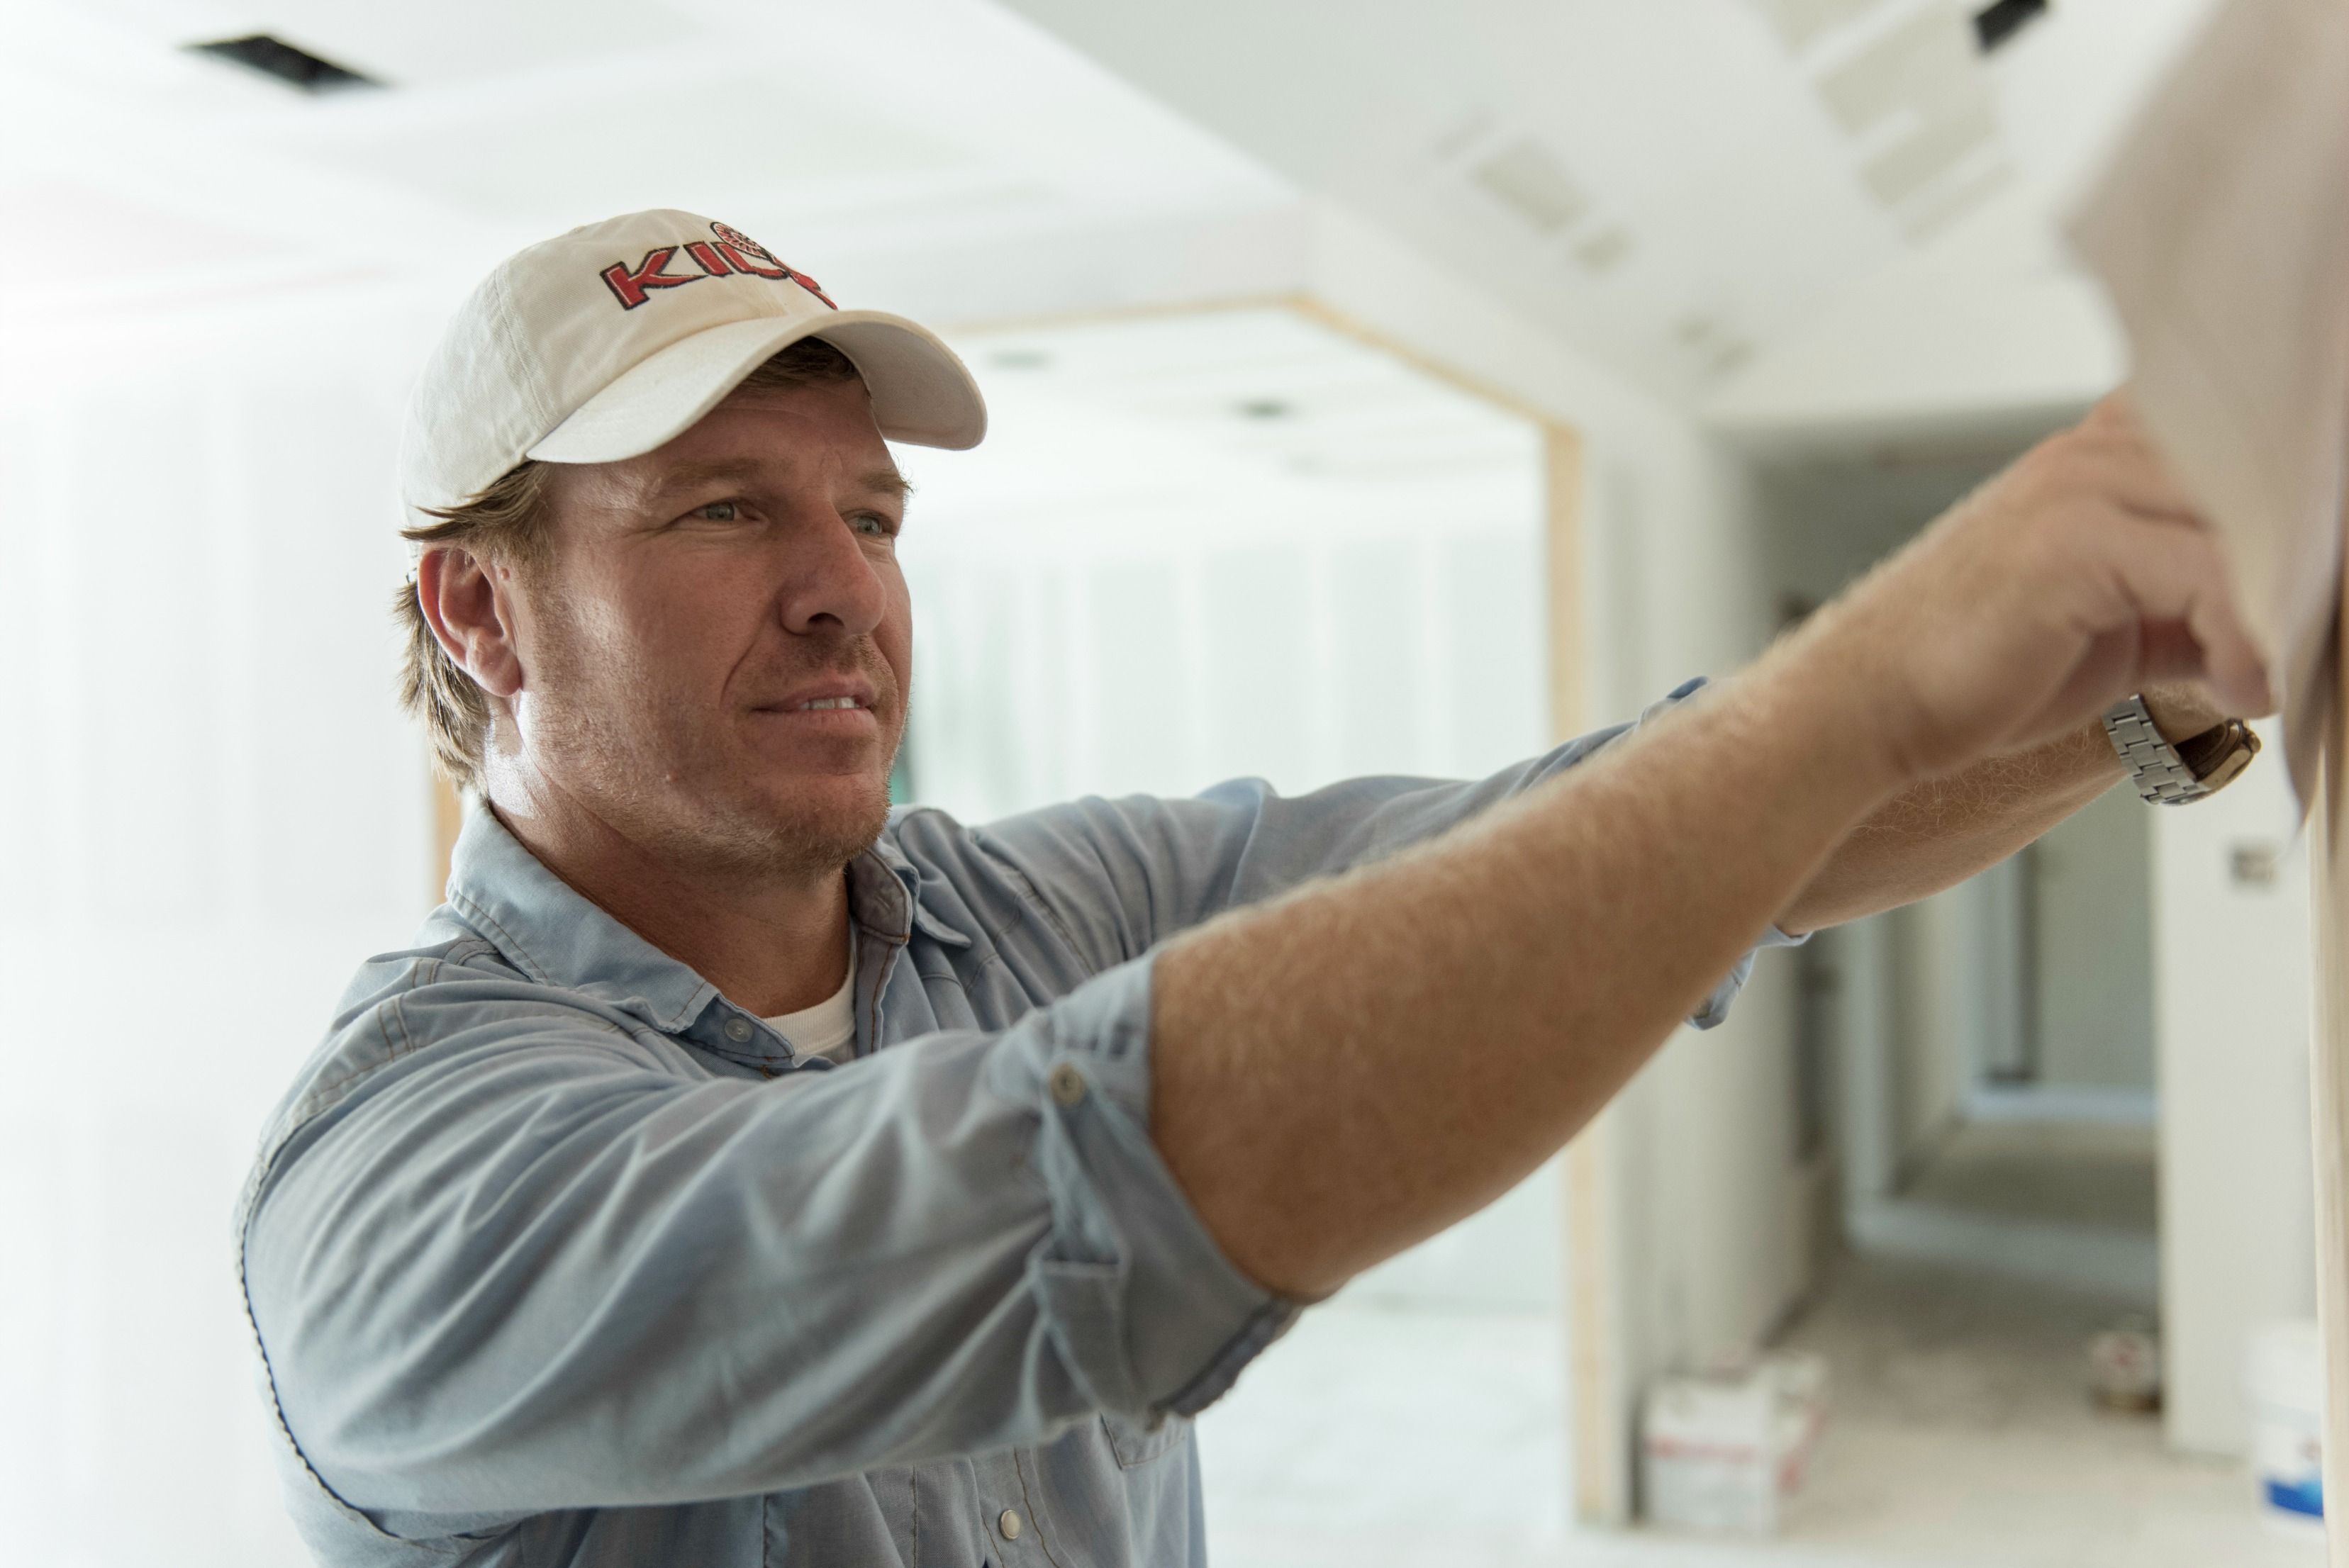 5 Tools Fixer Upper's Chip Gaines Swears By